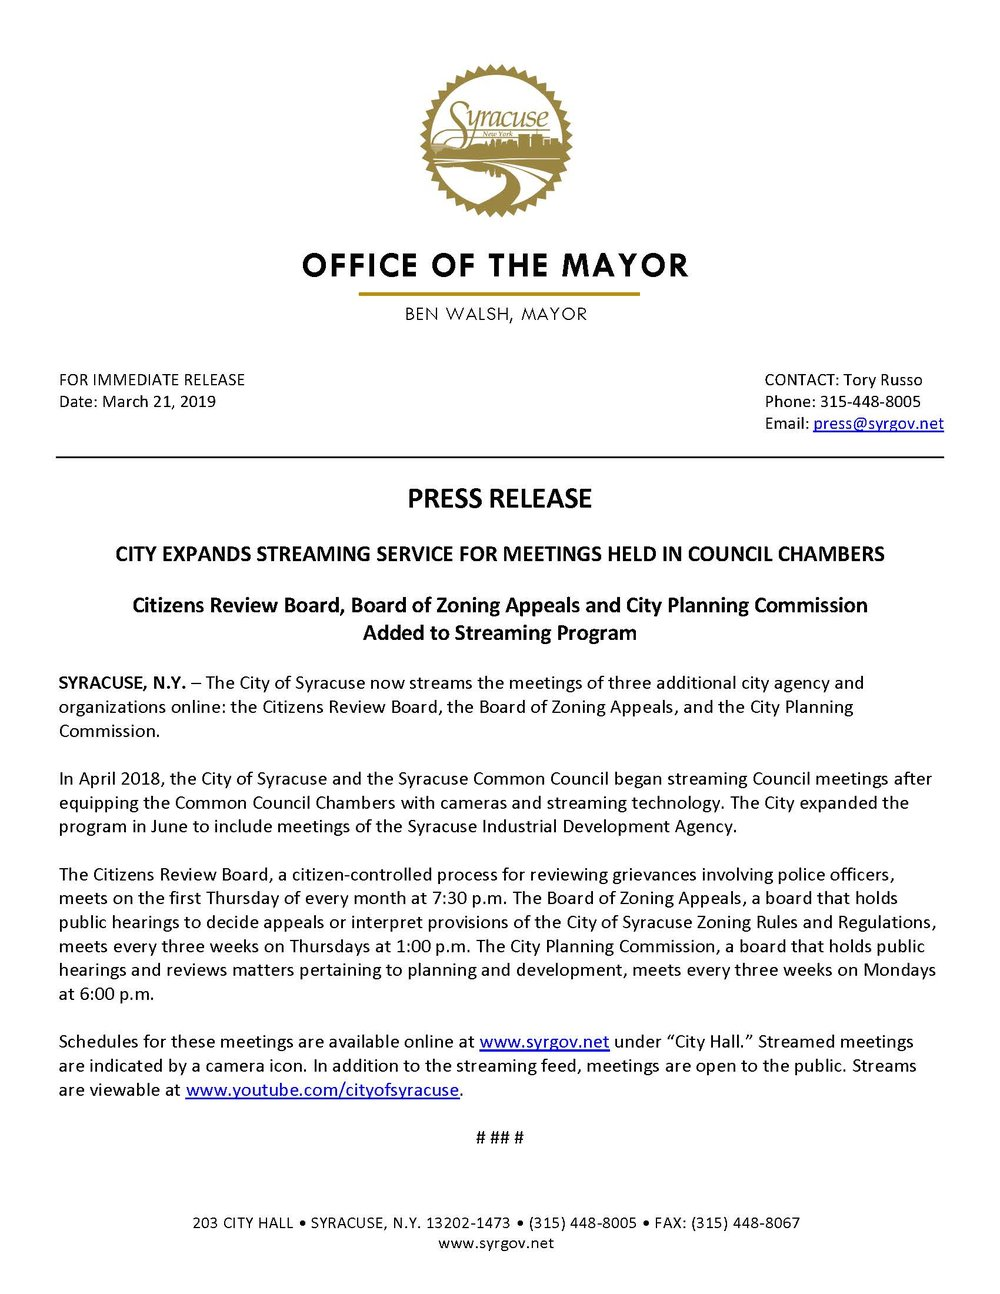 2019 03 21 PRESS RELEASE City Expands Streaming Service for Meetings Held in Council Chambers.jpg